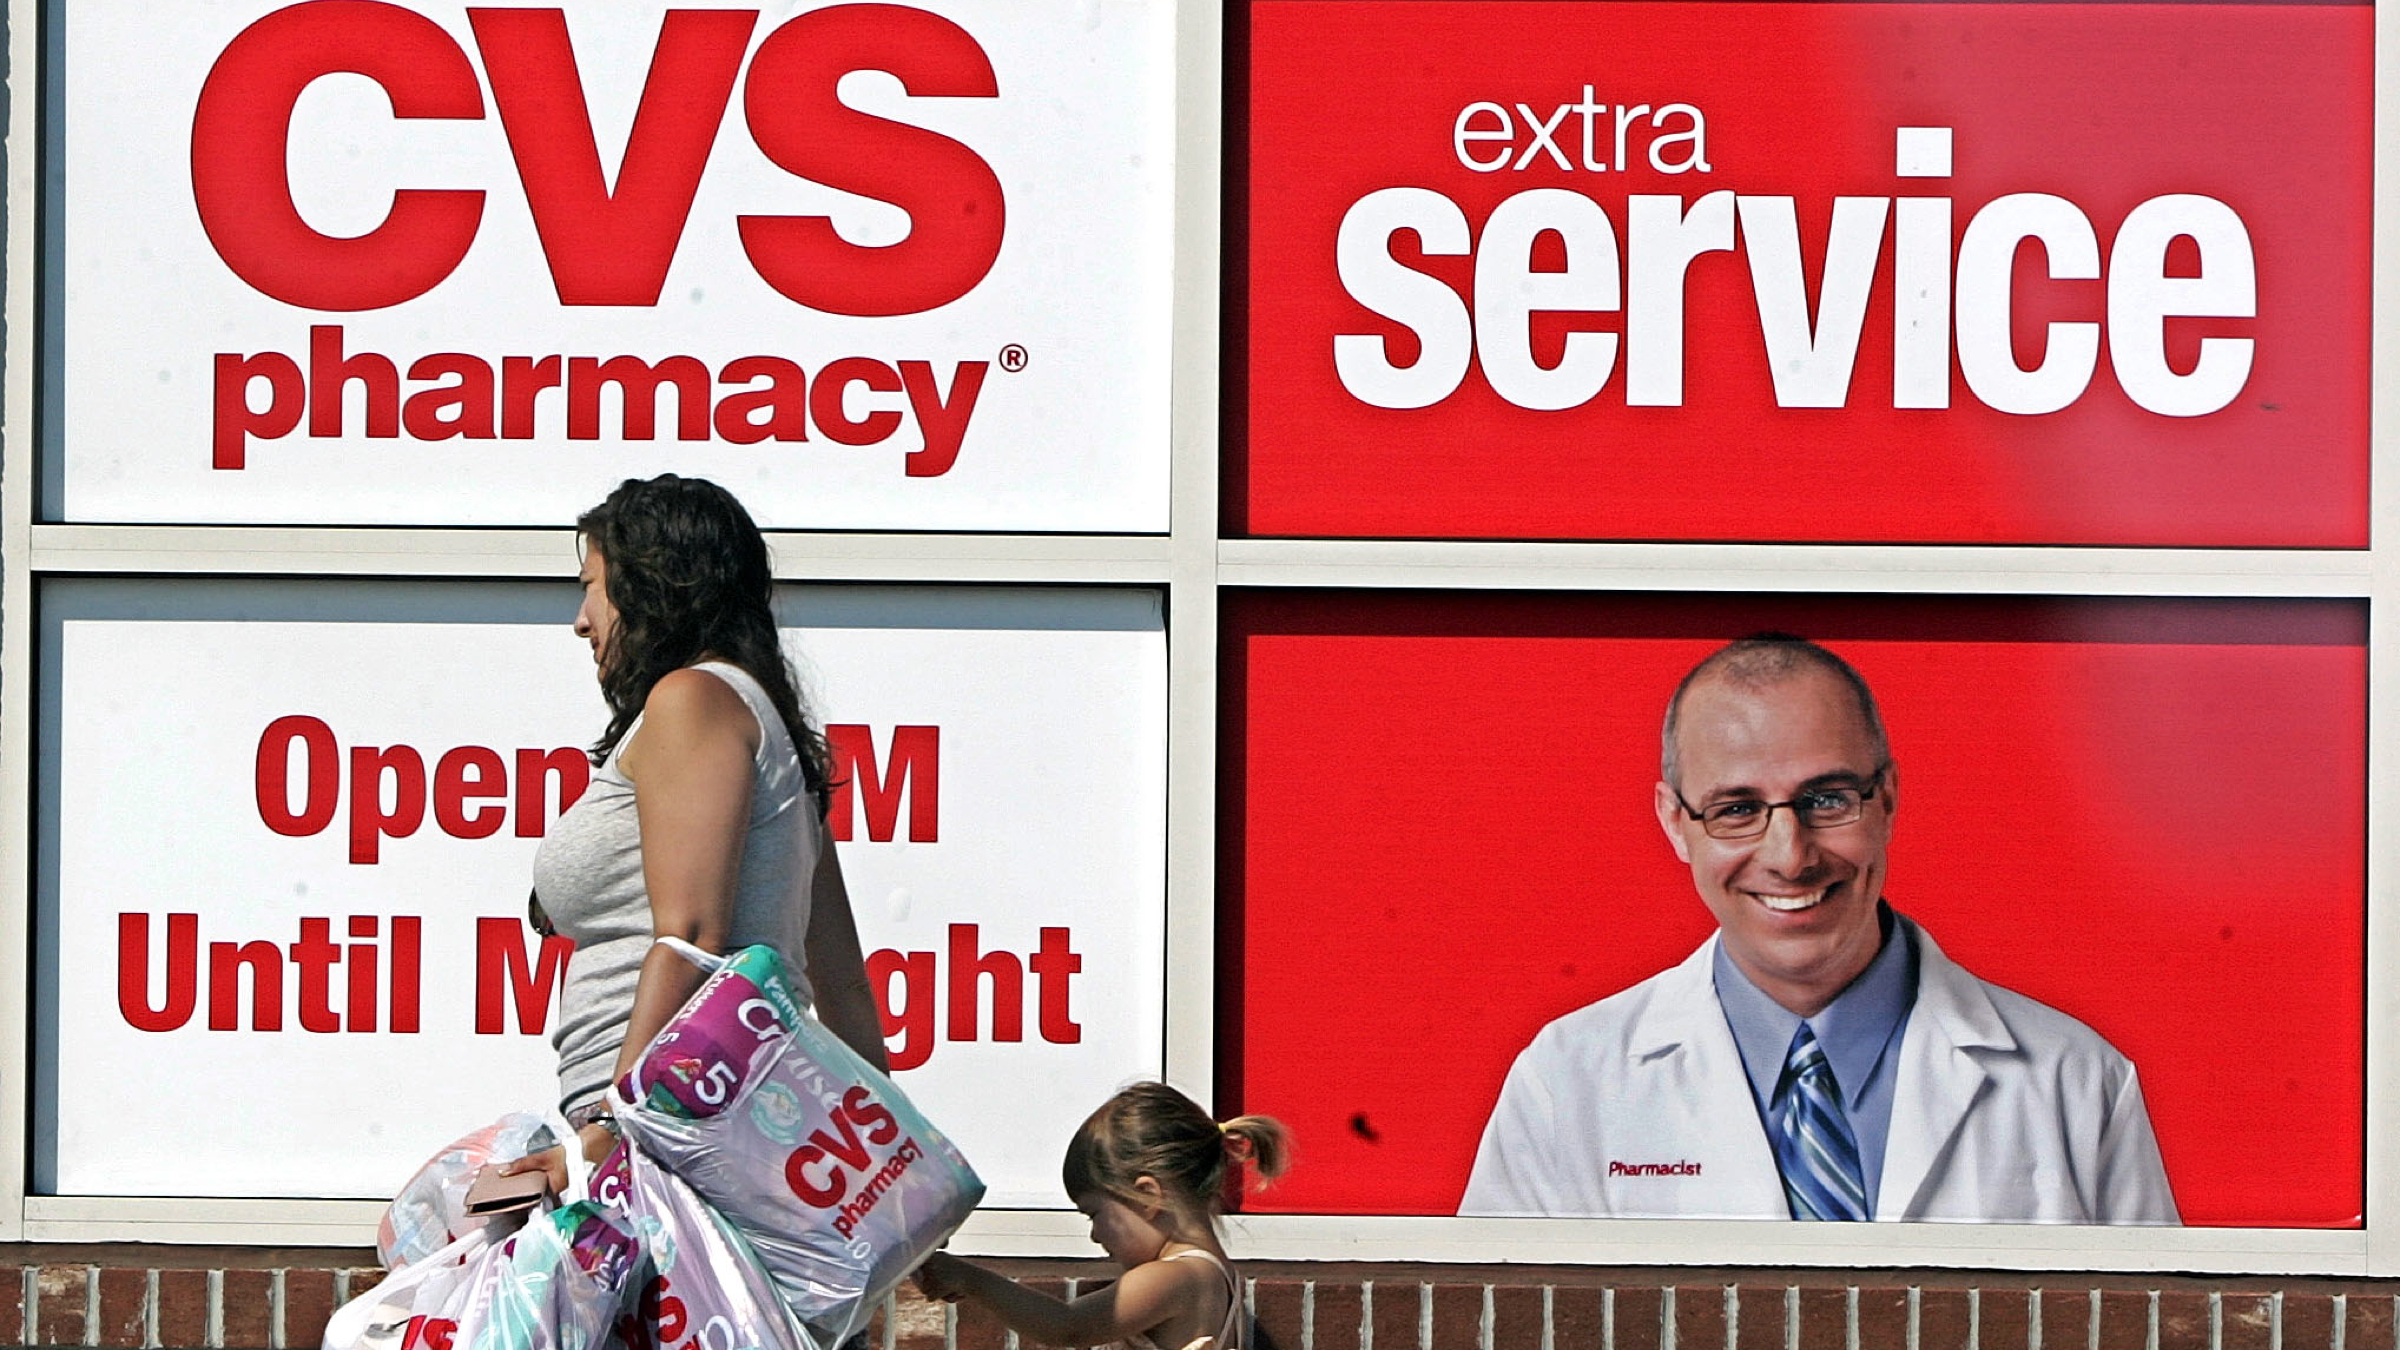 ** FILE ** CVS posters are seen in front of a CVS store in Boston, in this Aug. 3, 2006 file photo. CVS Caremark Corp., one of the nation's biggest drugstore chains, on Thursday, Nov. 1, 2007 said its third-quarter profit more than doubled due to an 83 percent sales gain and the use of more generic drugs. (AP Photo/Chitose Suzuki, file)